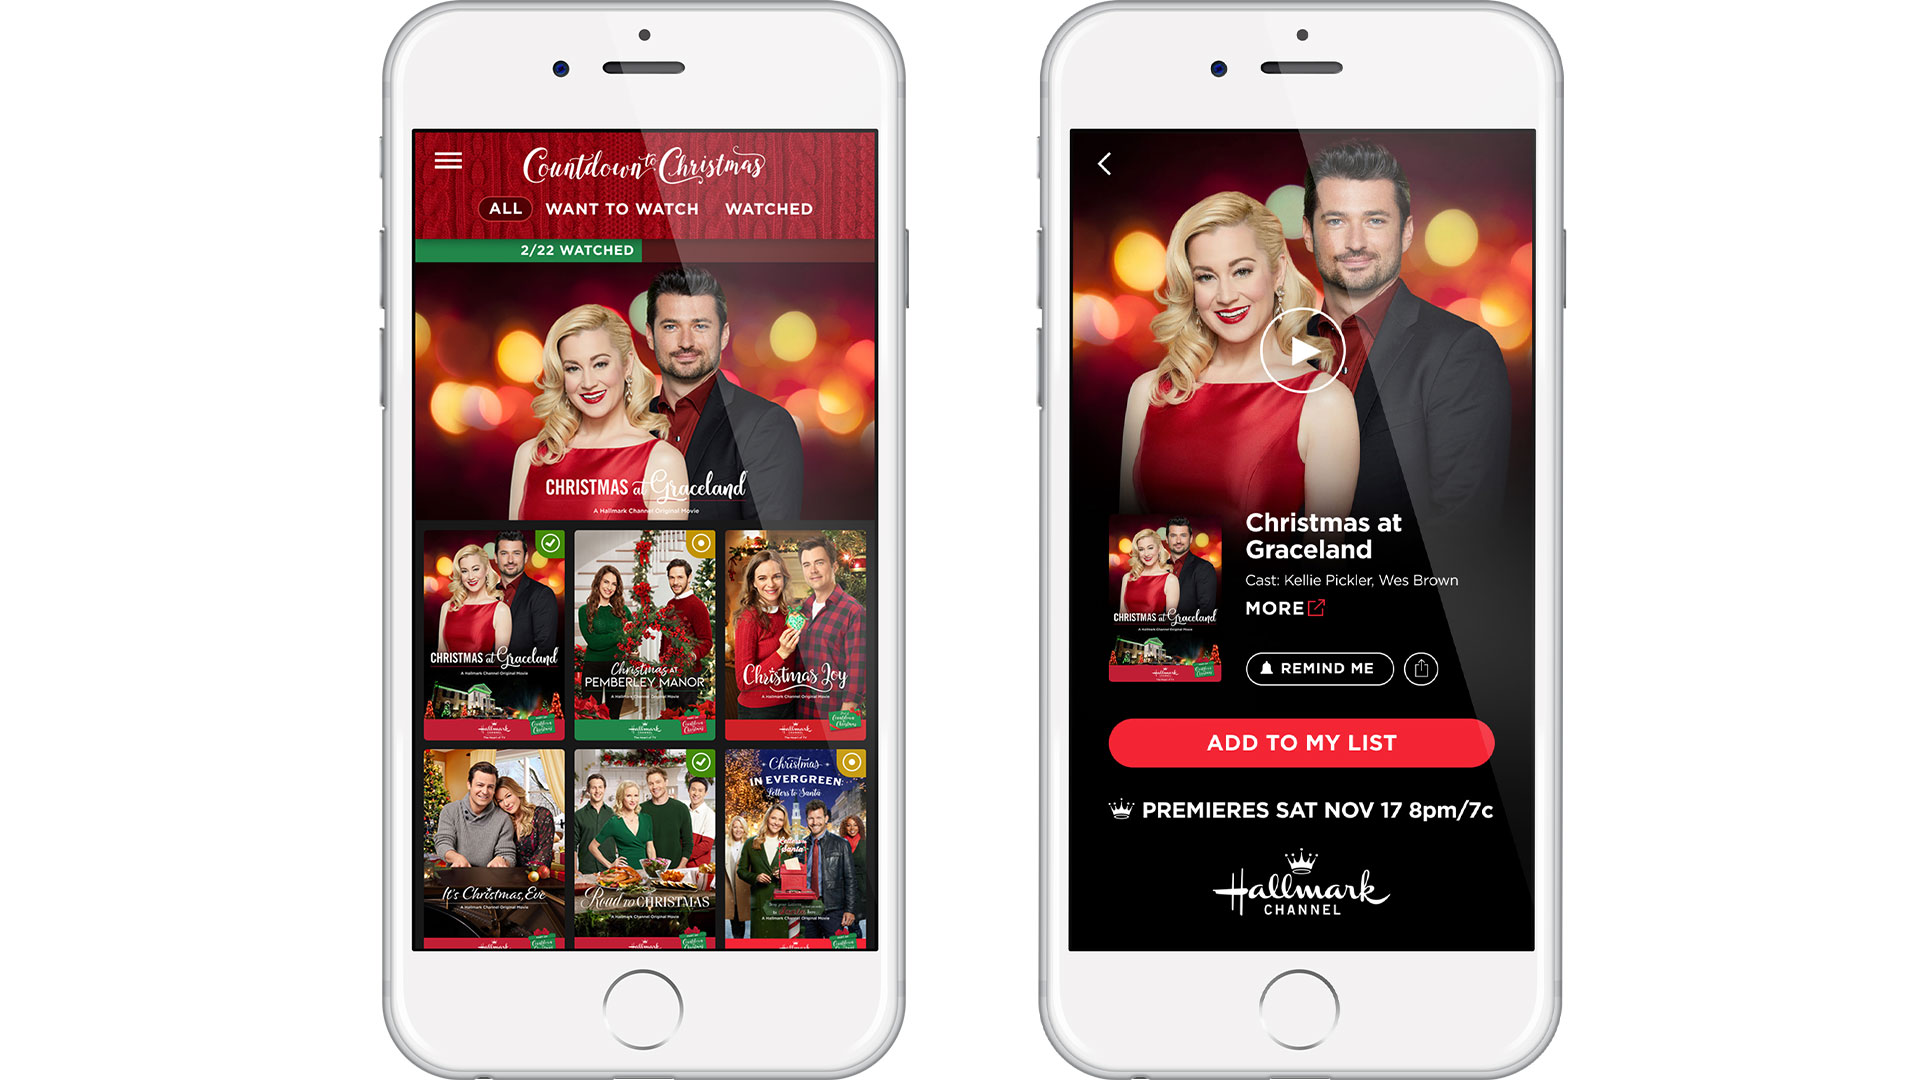 hallmarks new app will help you live your best countdown to christmas life southern living - All I Want For Christmas Hallmark Movie